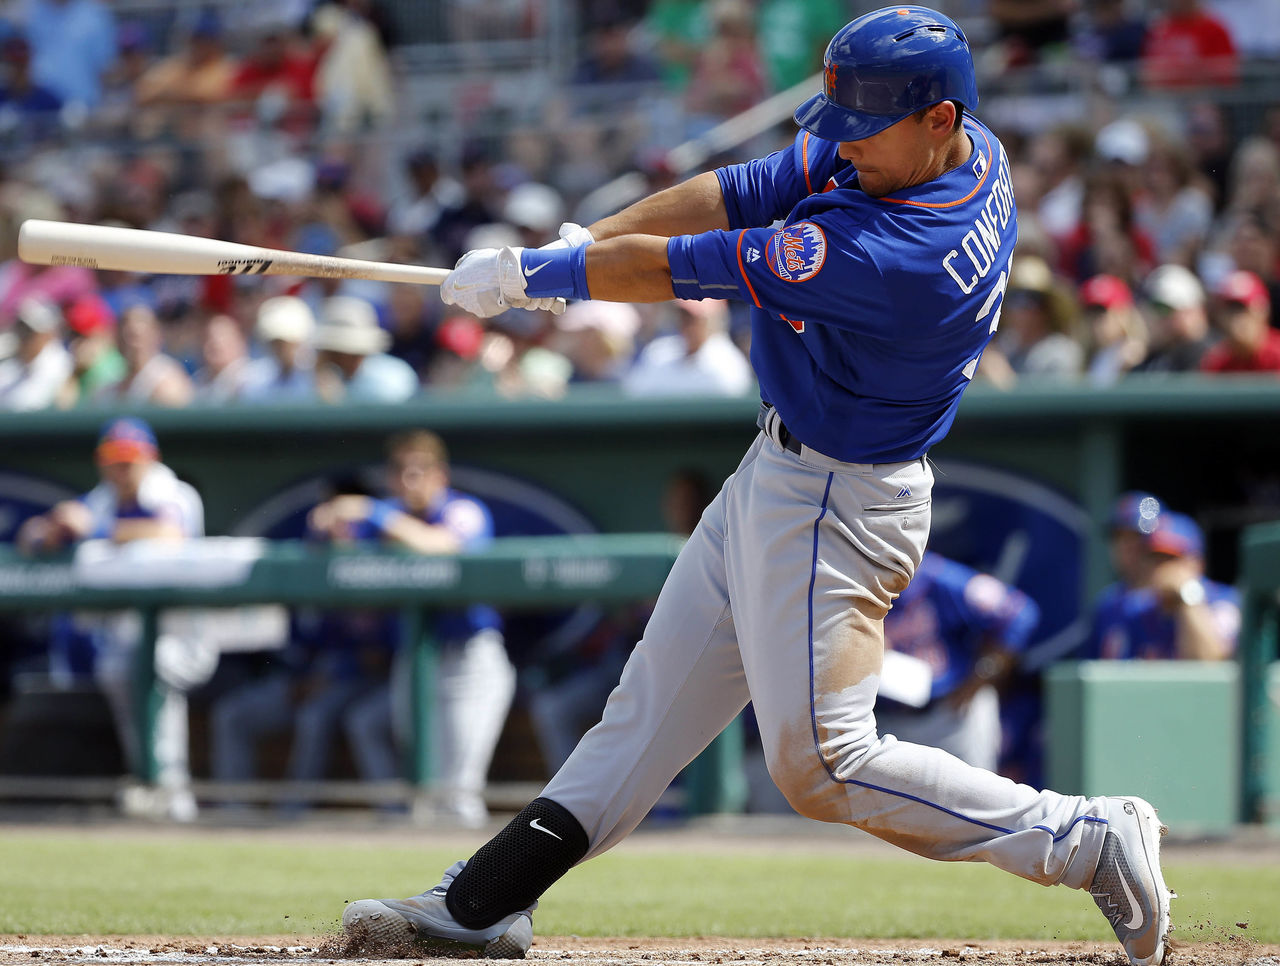 Cropped 2017 02 24t204451z 2113606530 nocid rtrmadp 3 mlb spring training new york mets at boston red sox